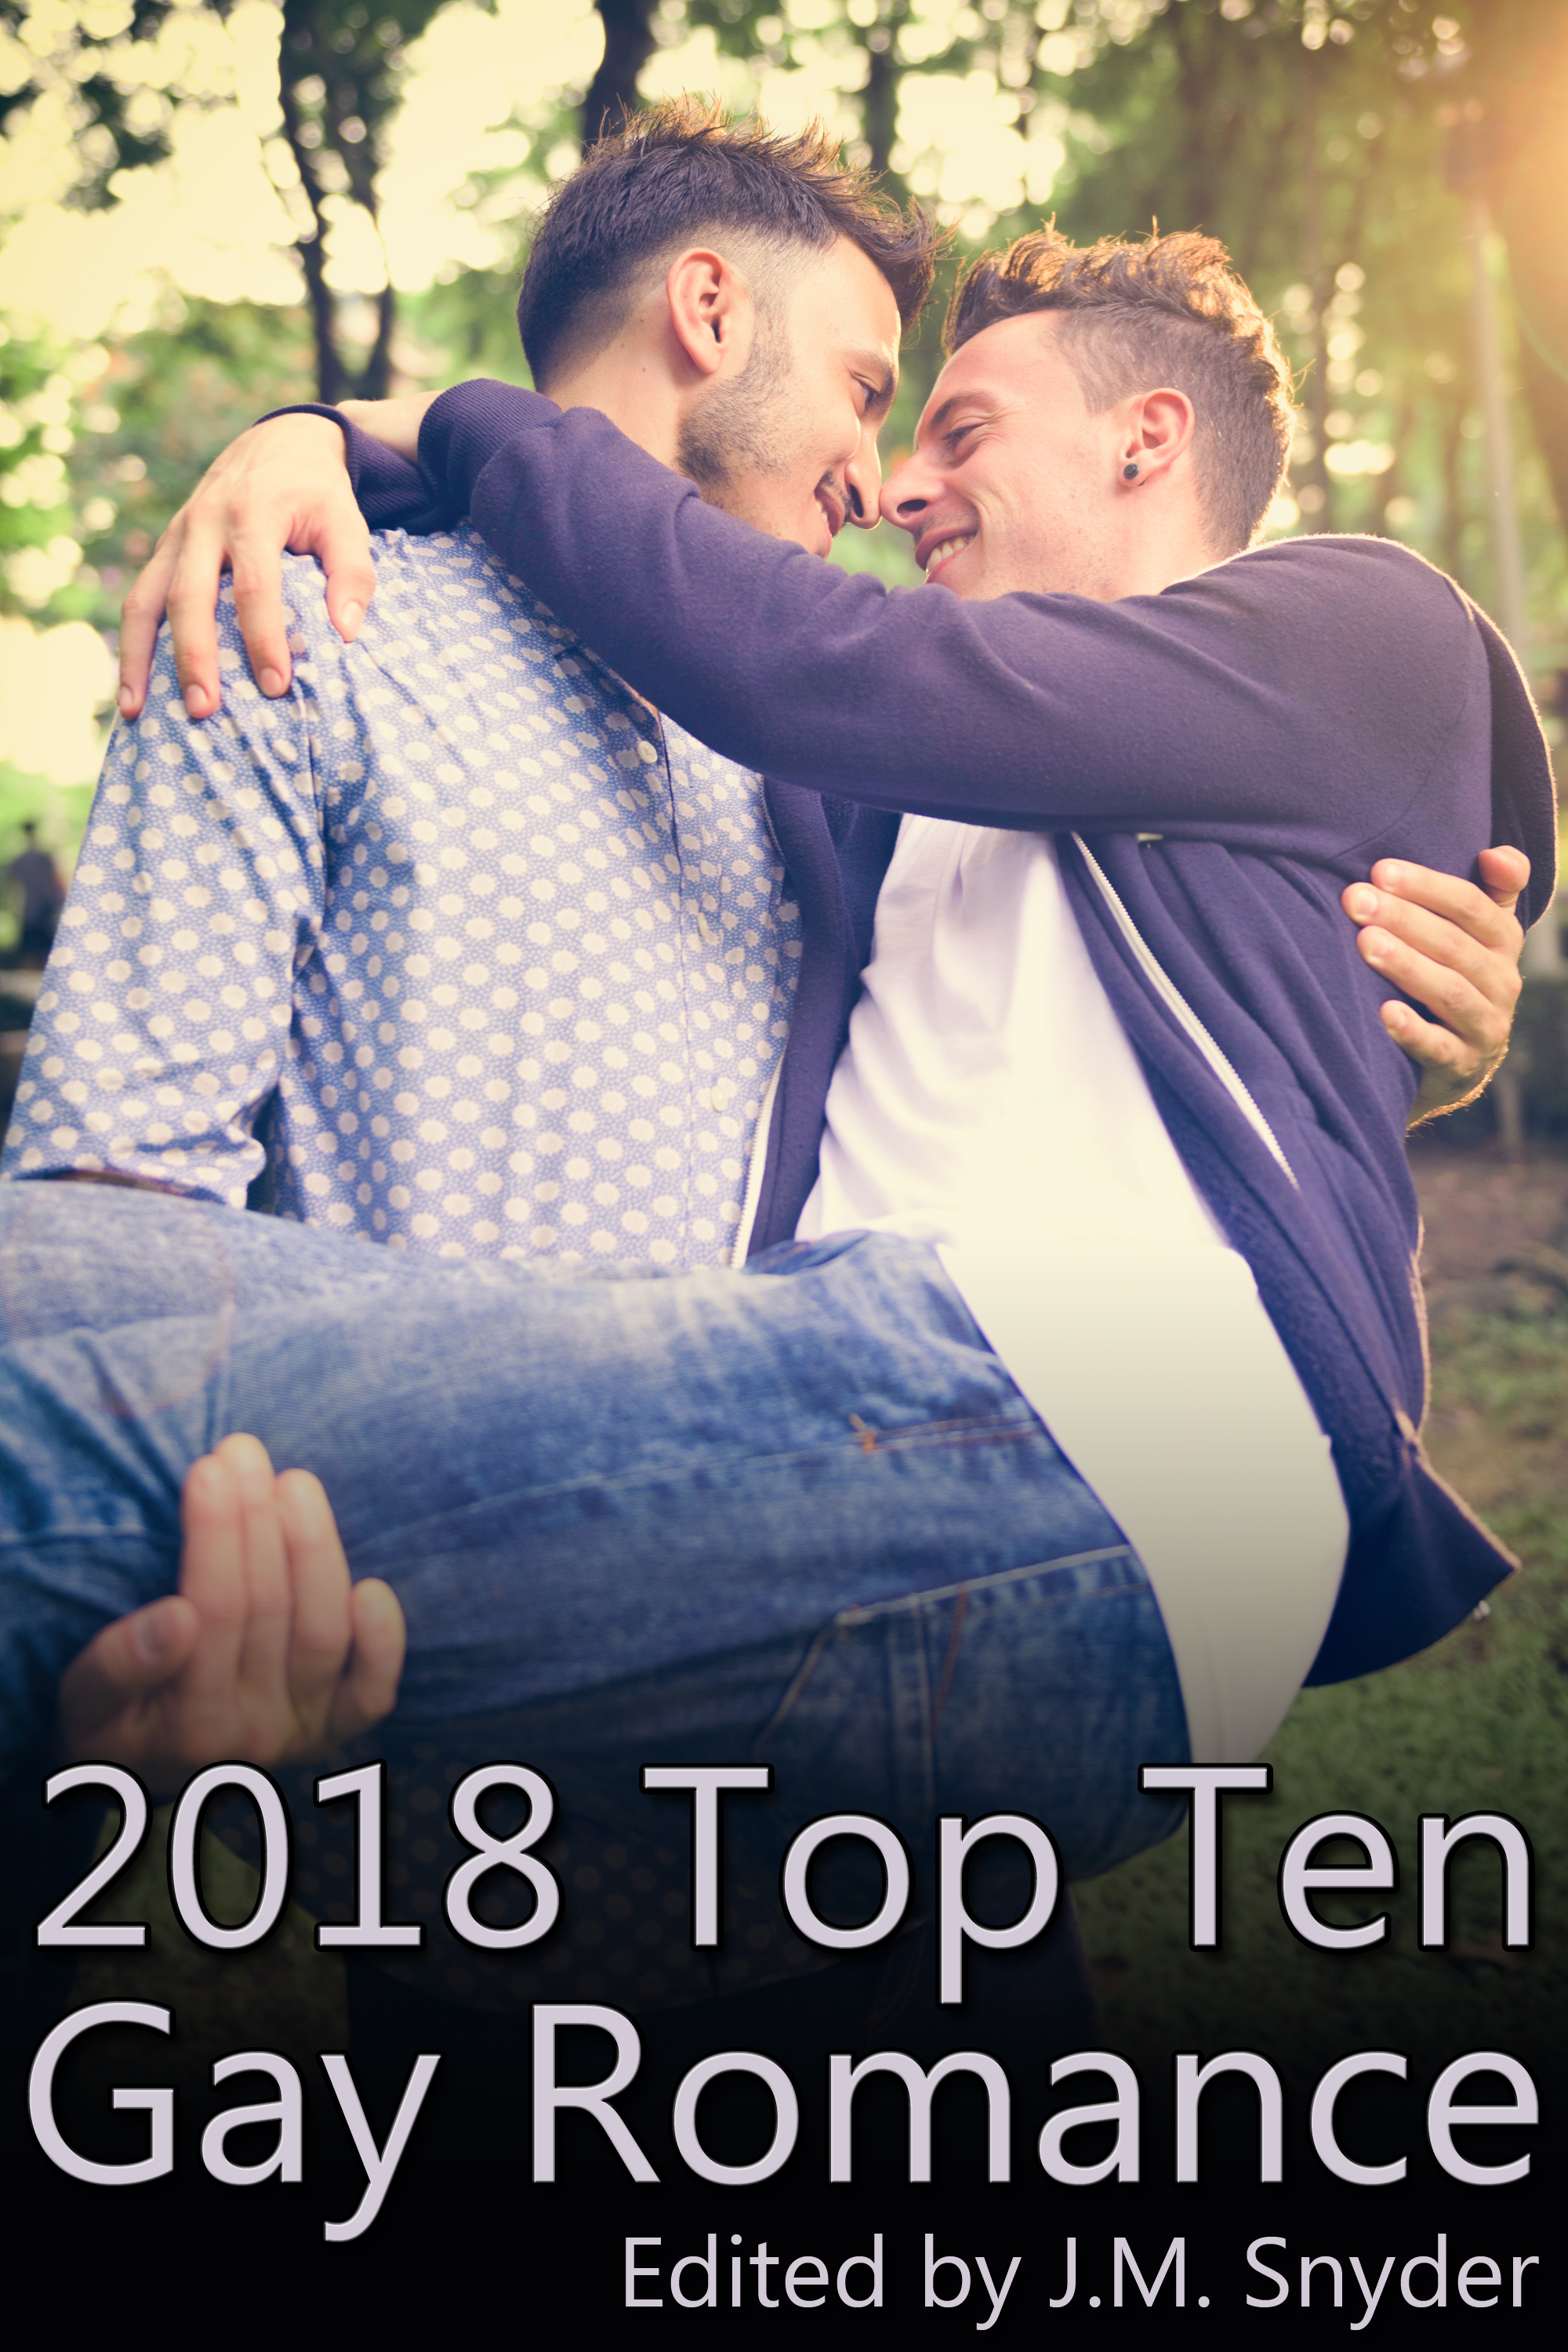 2018 Top Ten Gay Romance, an Ebook by J M  Snyder